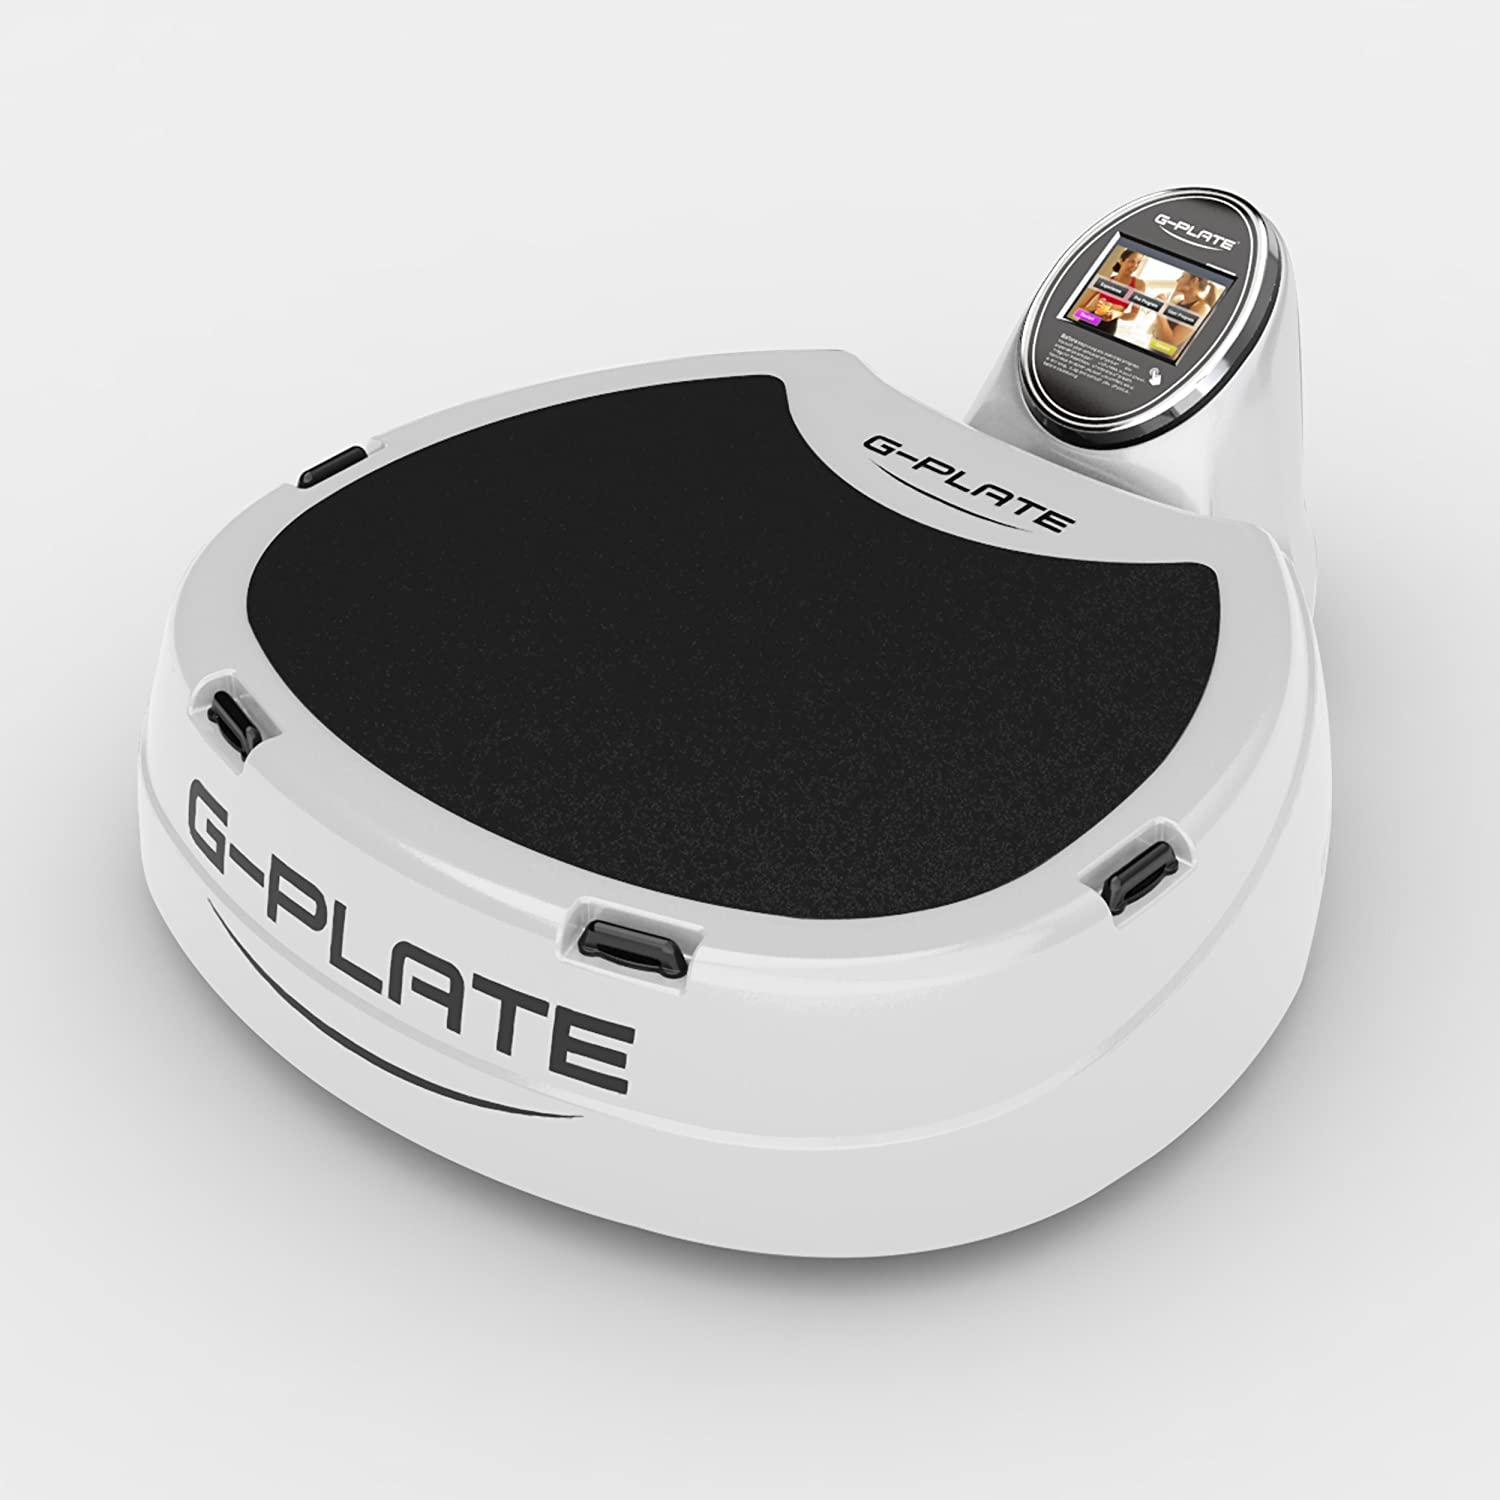 Vibrationsplatte G-Plate Professionell DPS Dual Power Suspension High End Weiß-Weiß Ohne Säule